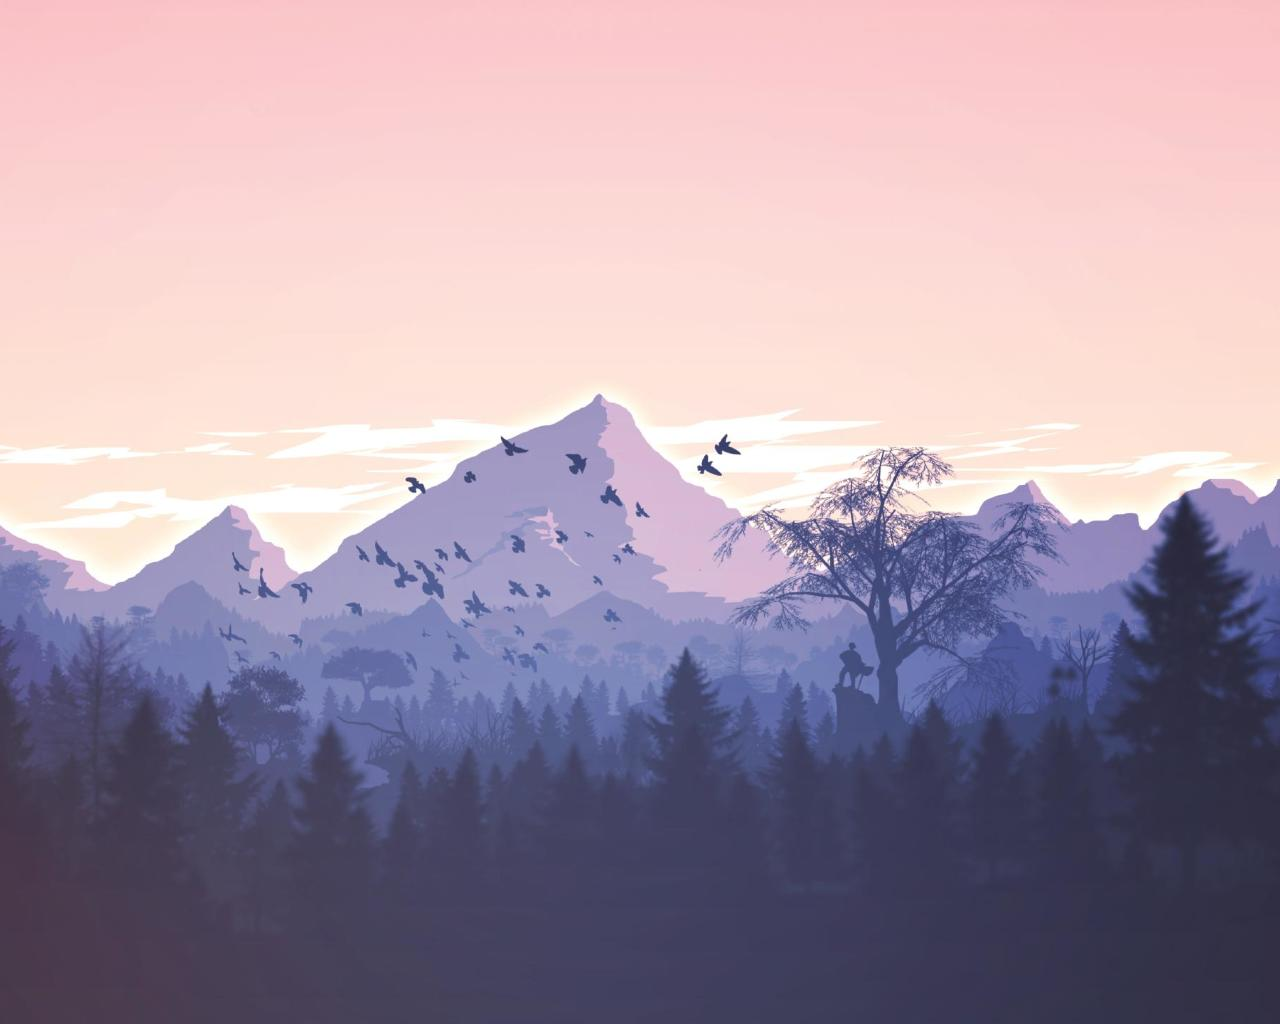 Download Minimalism Birds Mountains Trees Forest 1366x768